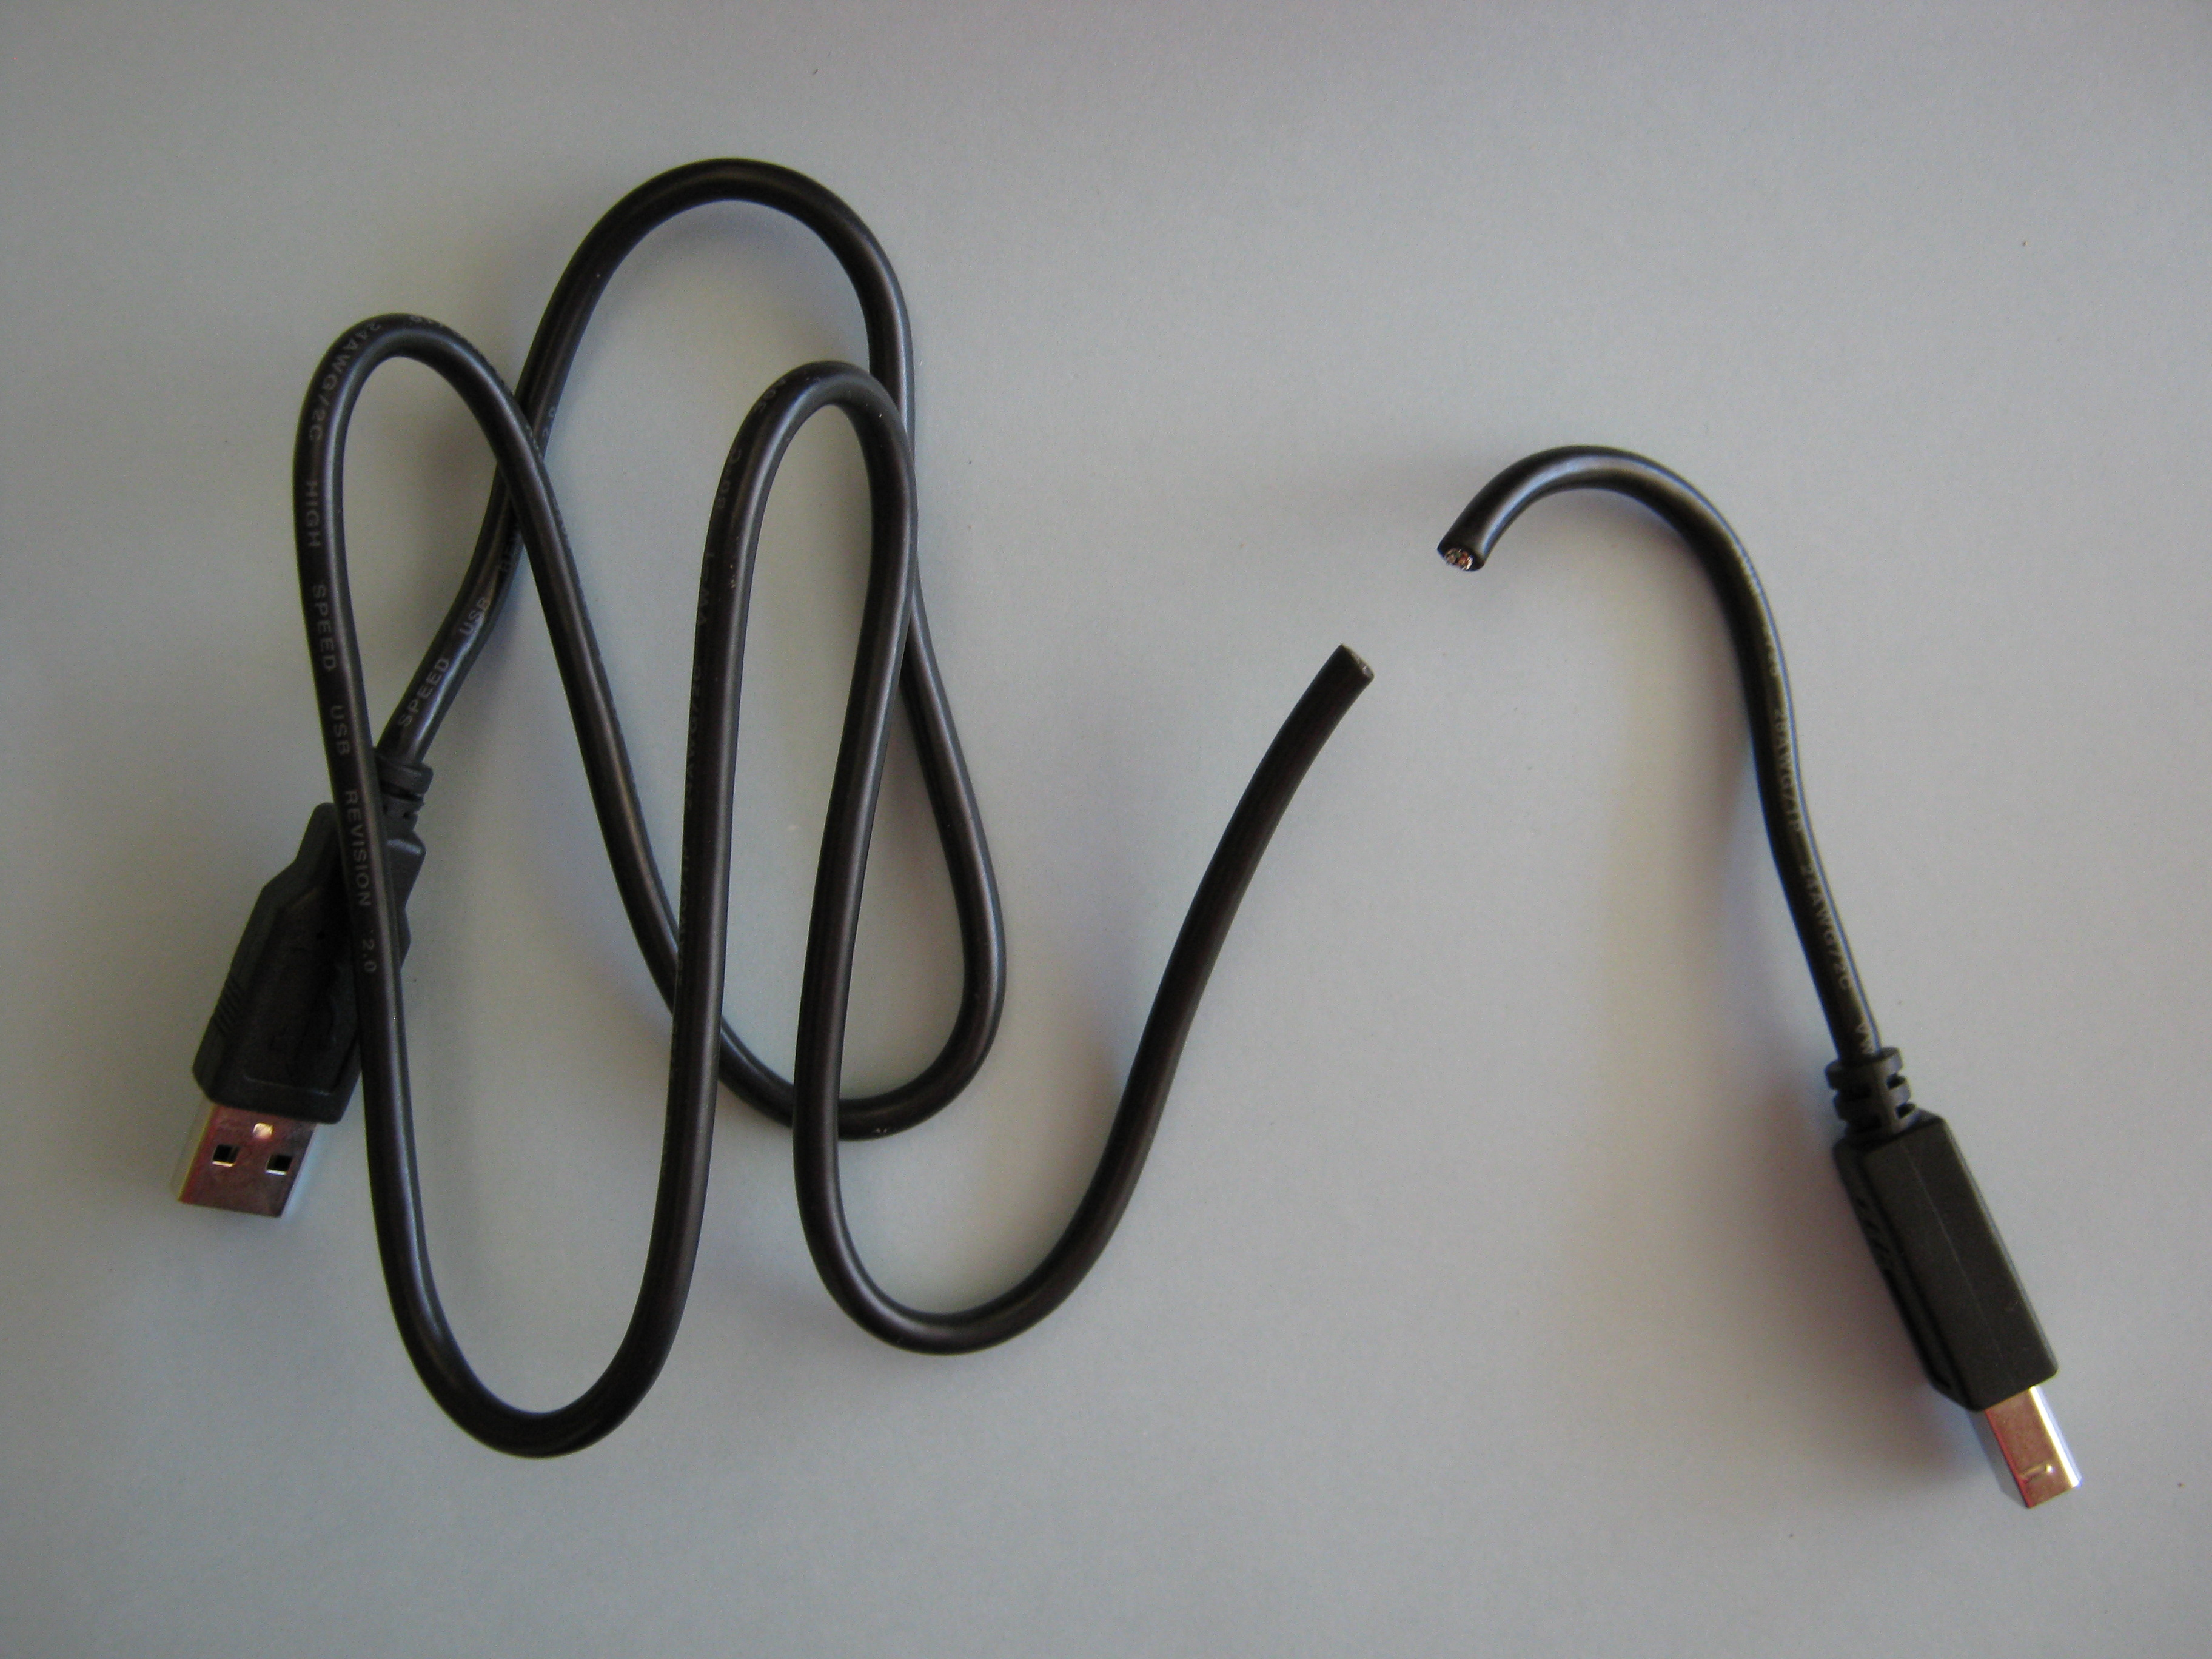 Picture of Prepare the USB Cable and Attach the LED